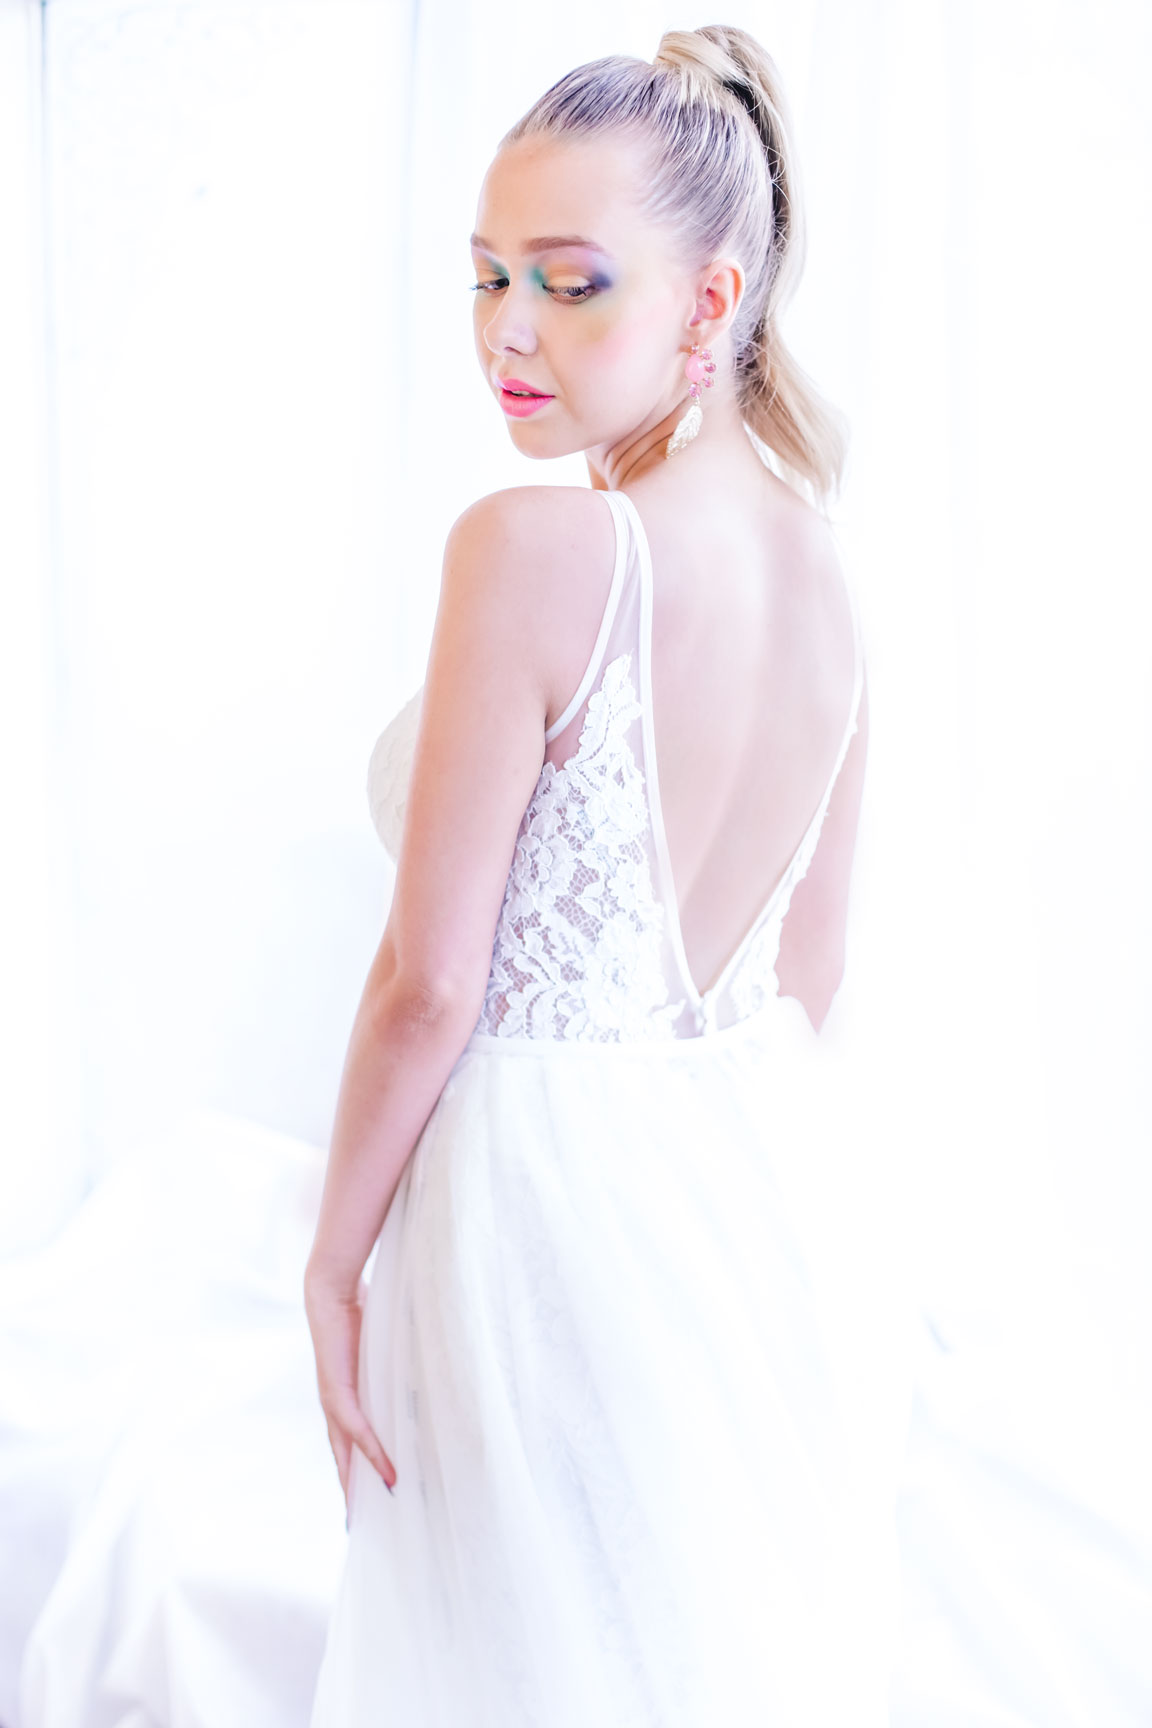 May & Grace Bridal - 3 alternative bridal looks 1 - modern bride